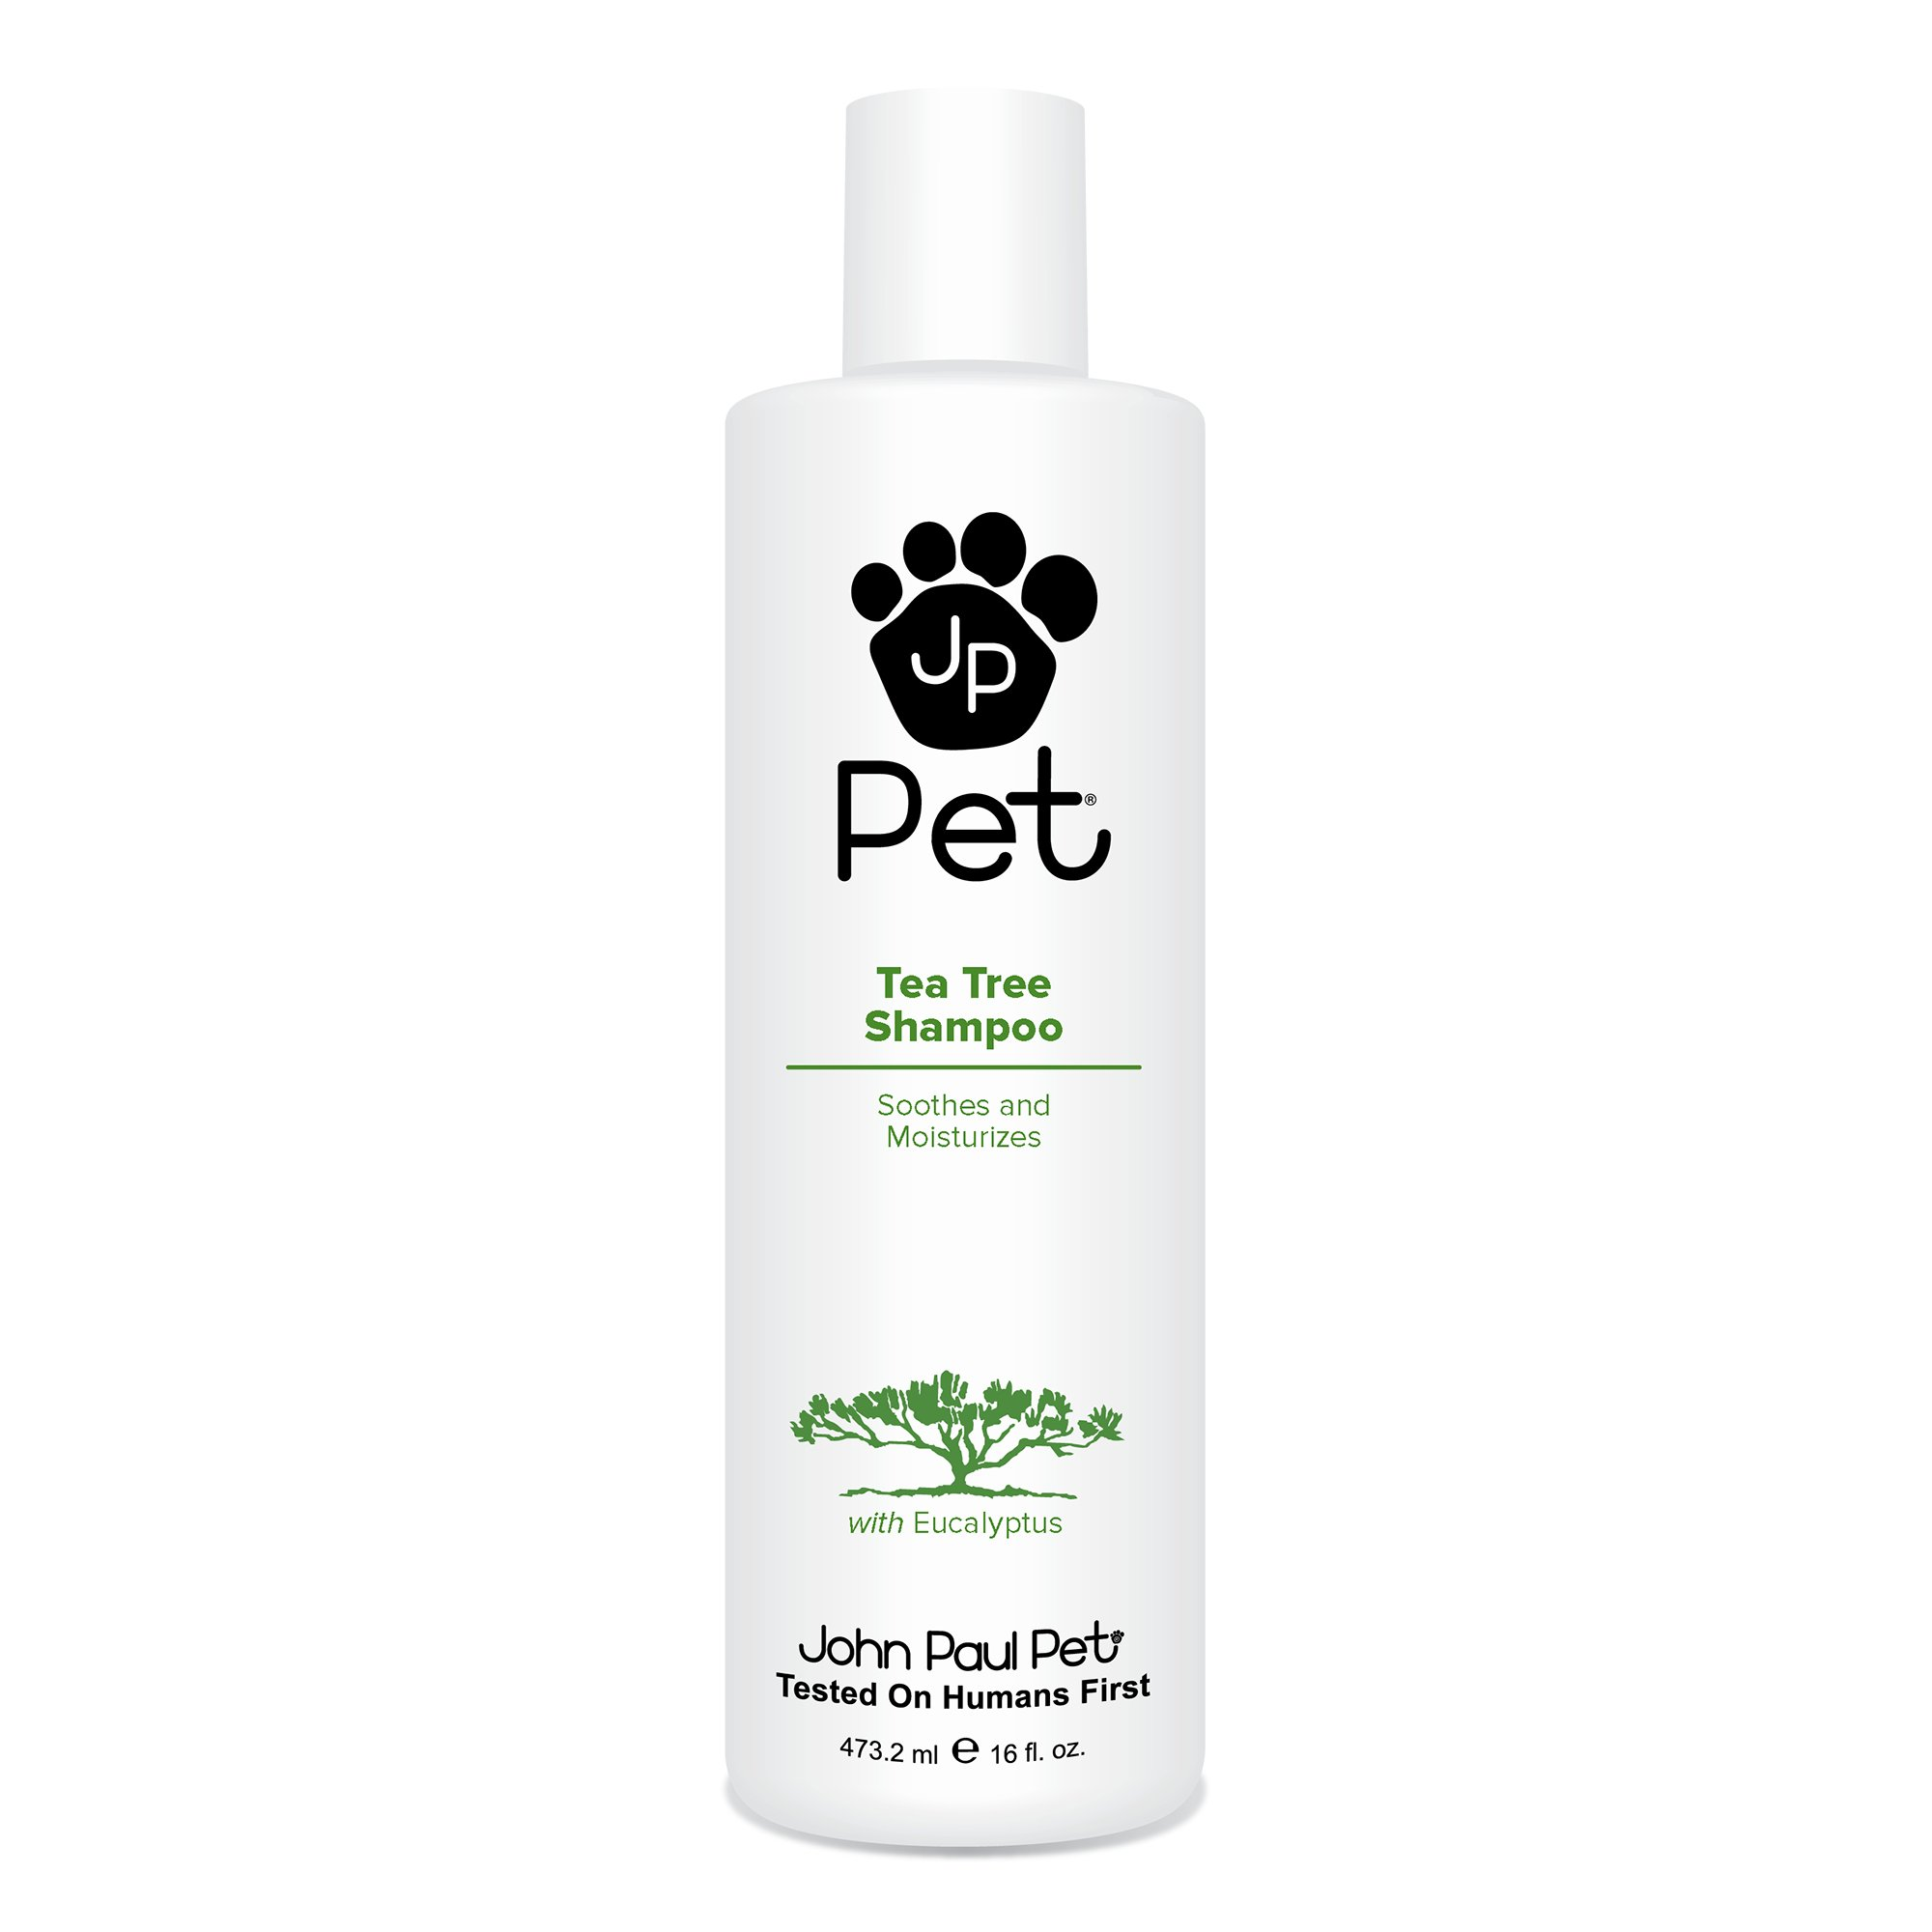 John Paul Pet Tea Tree Treatment Dog Shampoo Petco